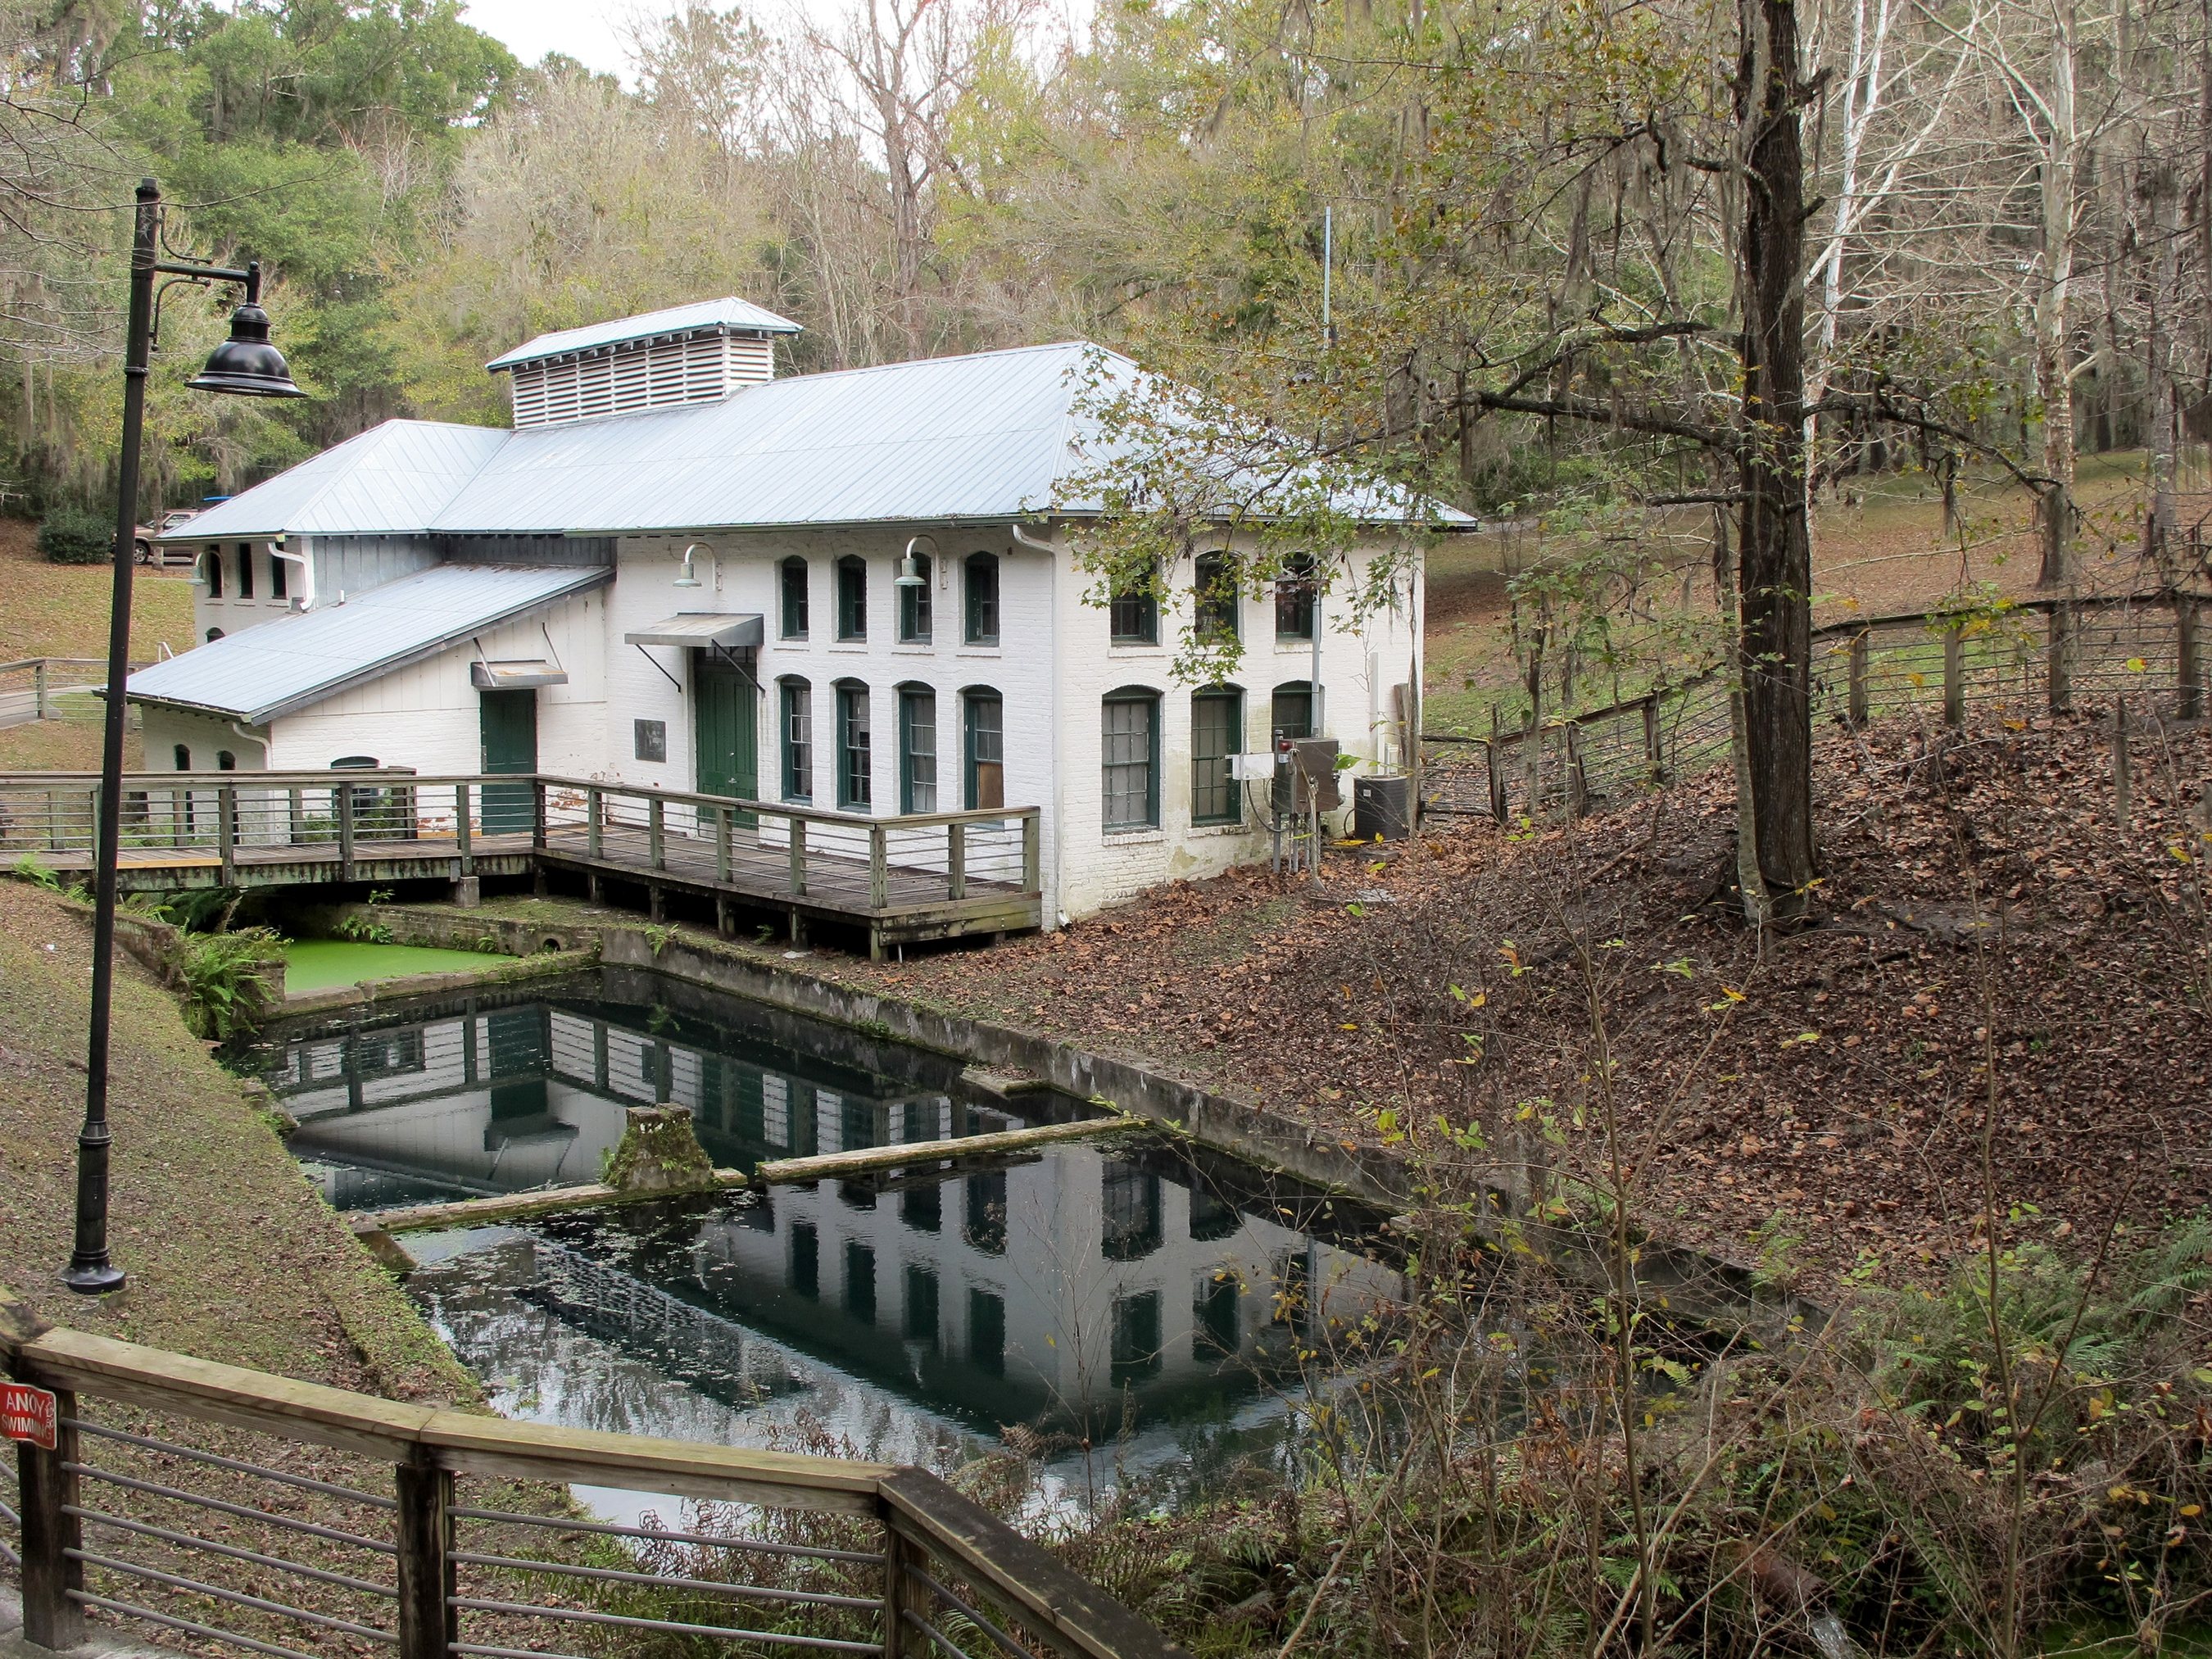 The Boulware Springs Waterworks building is one endpoint of the 16-mile Gainesville-Hawthorne Trail, which wends through Paynes Prairie. Illustrates TRAVEL-FLORIDA (category t), by Melanie D.G. Kaplan, special to The Washington Post. Moved Tuesday, Feb. 24, 2015. (MUST CREDIT: Jason Dearen.)